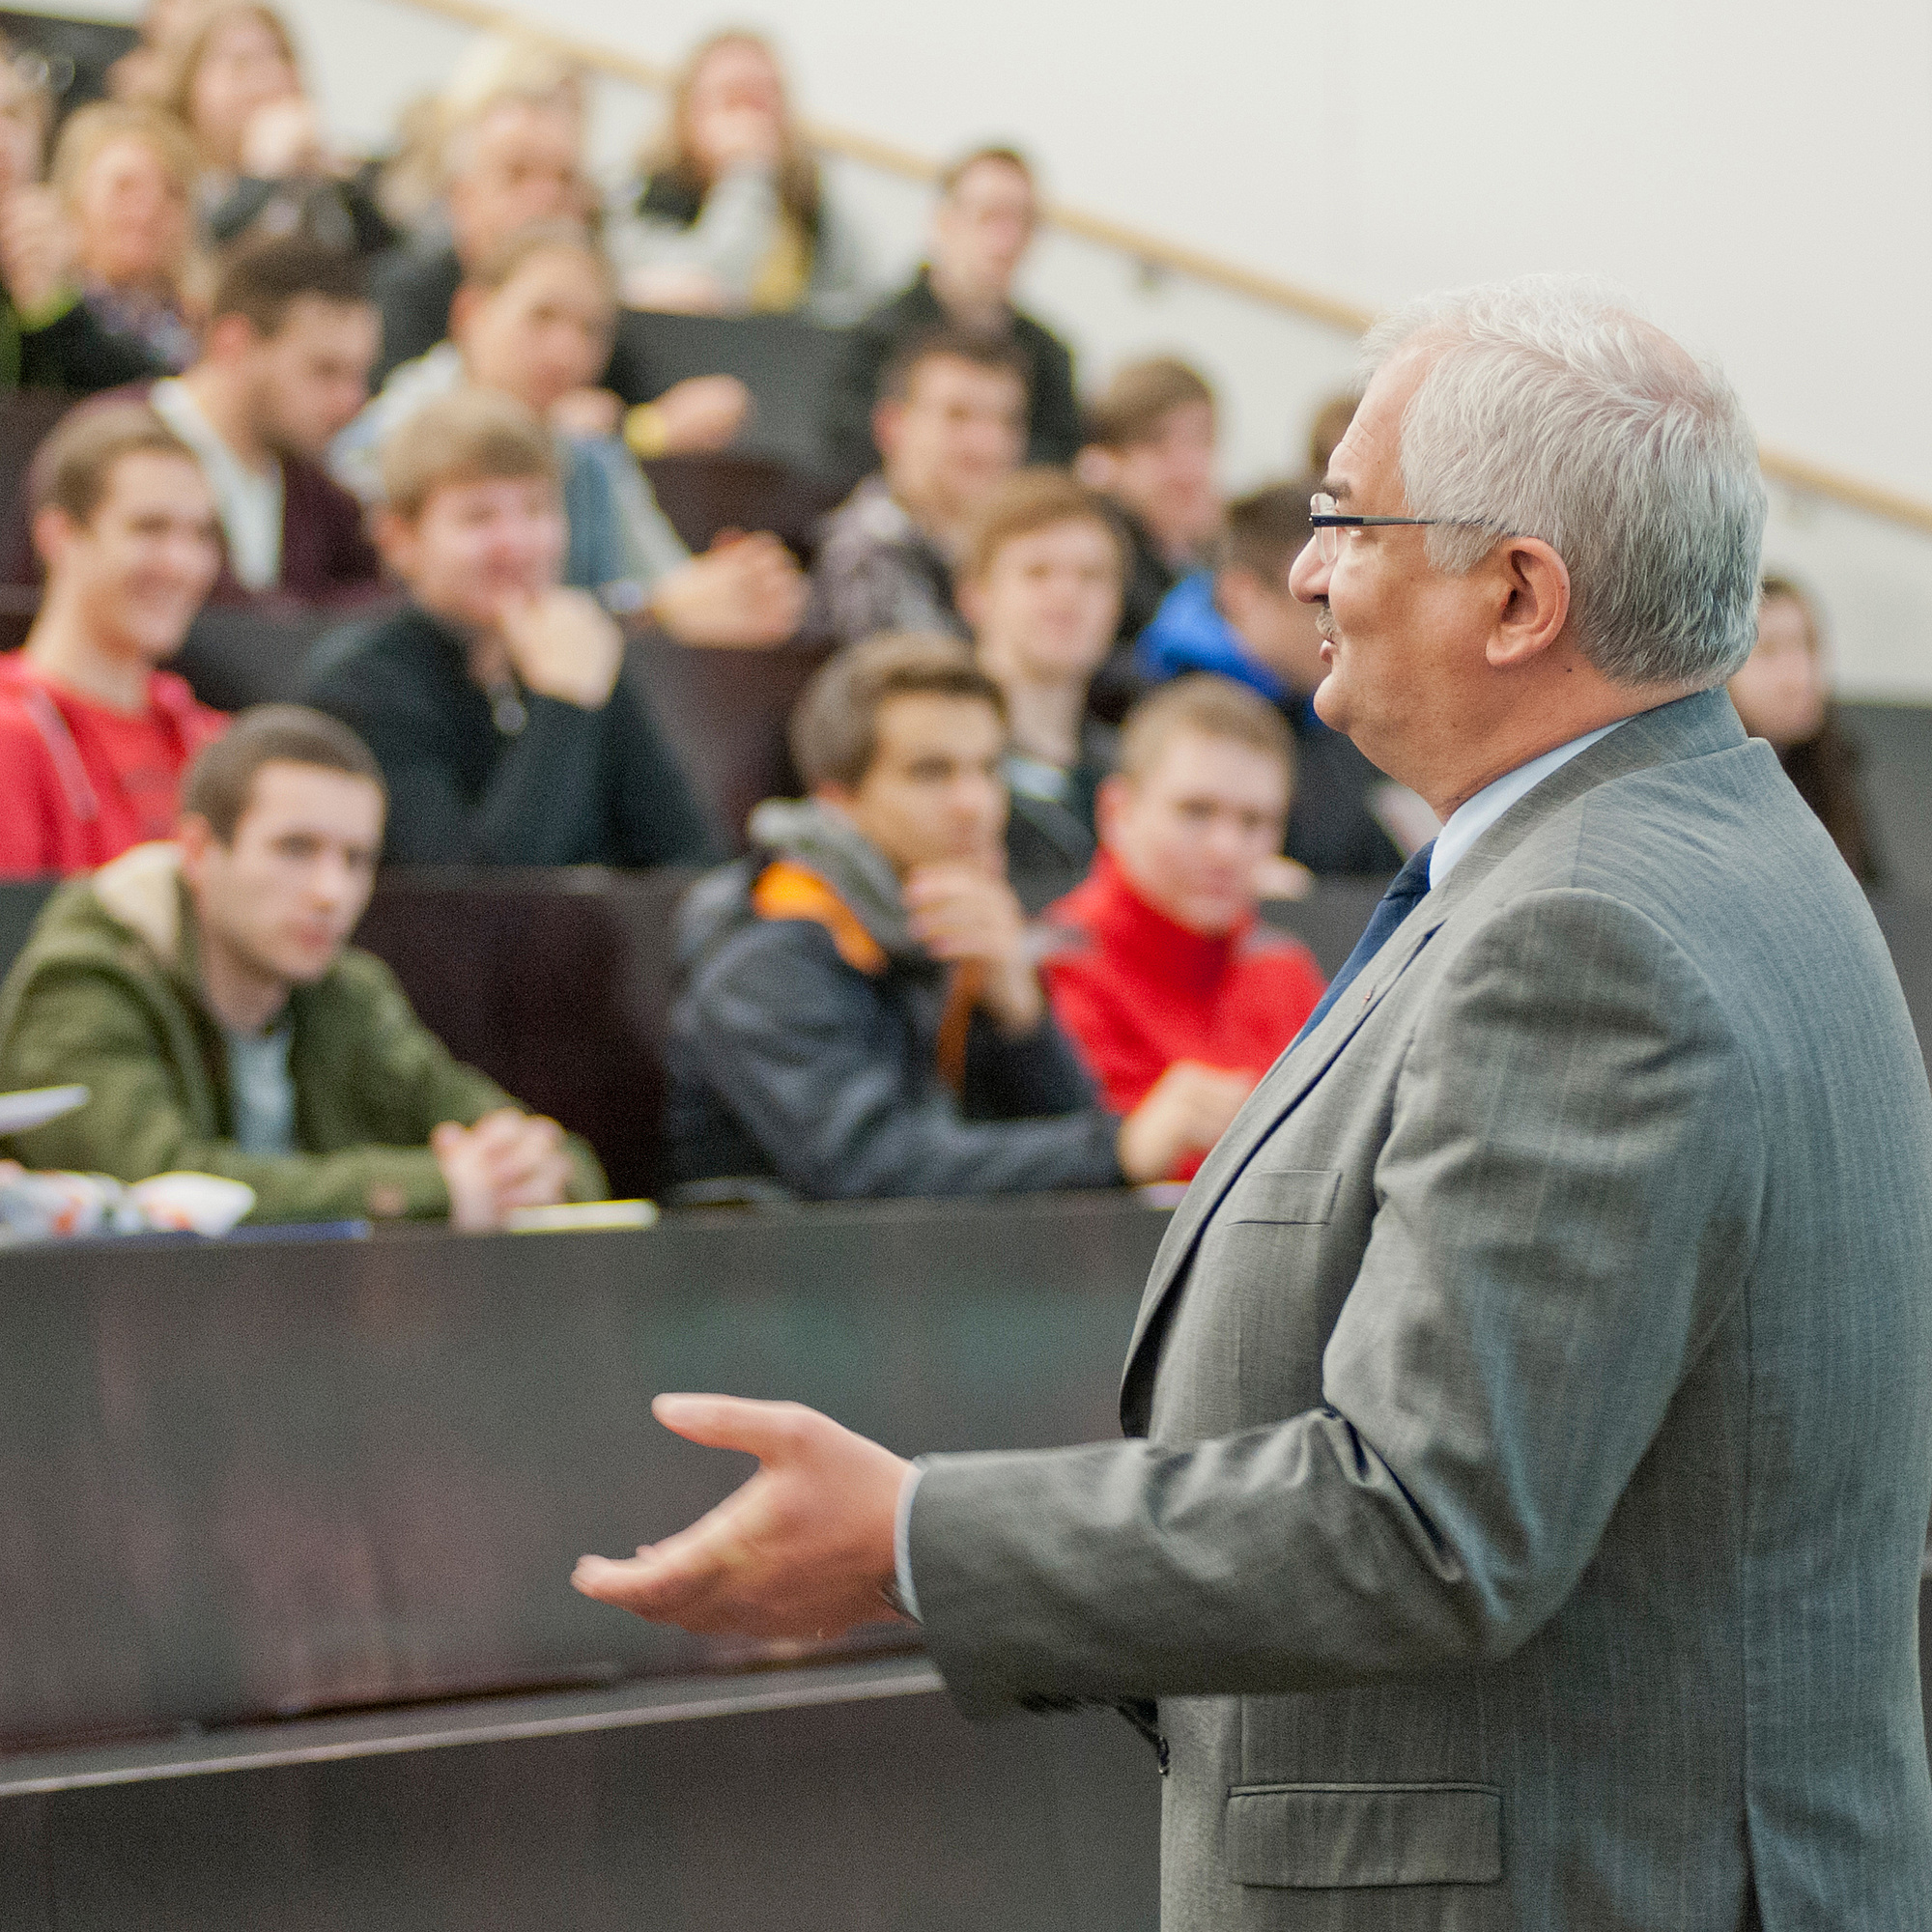 Professor in a lecture hall